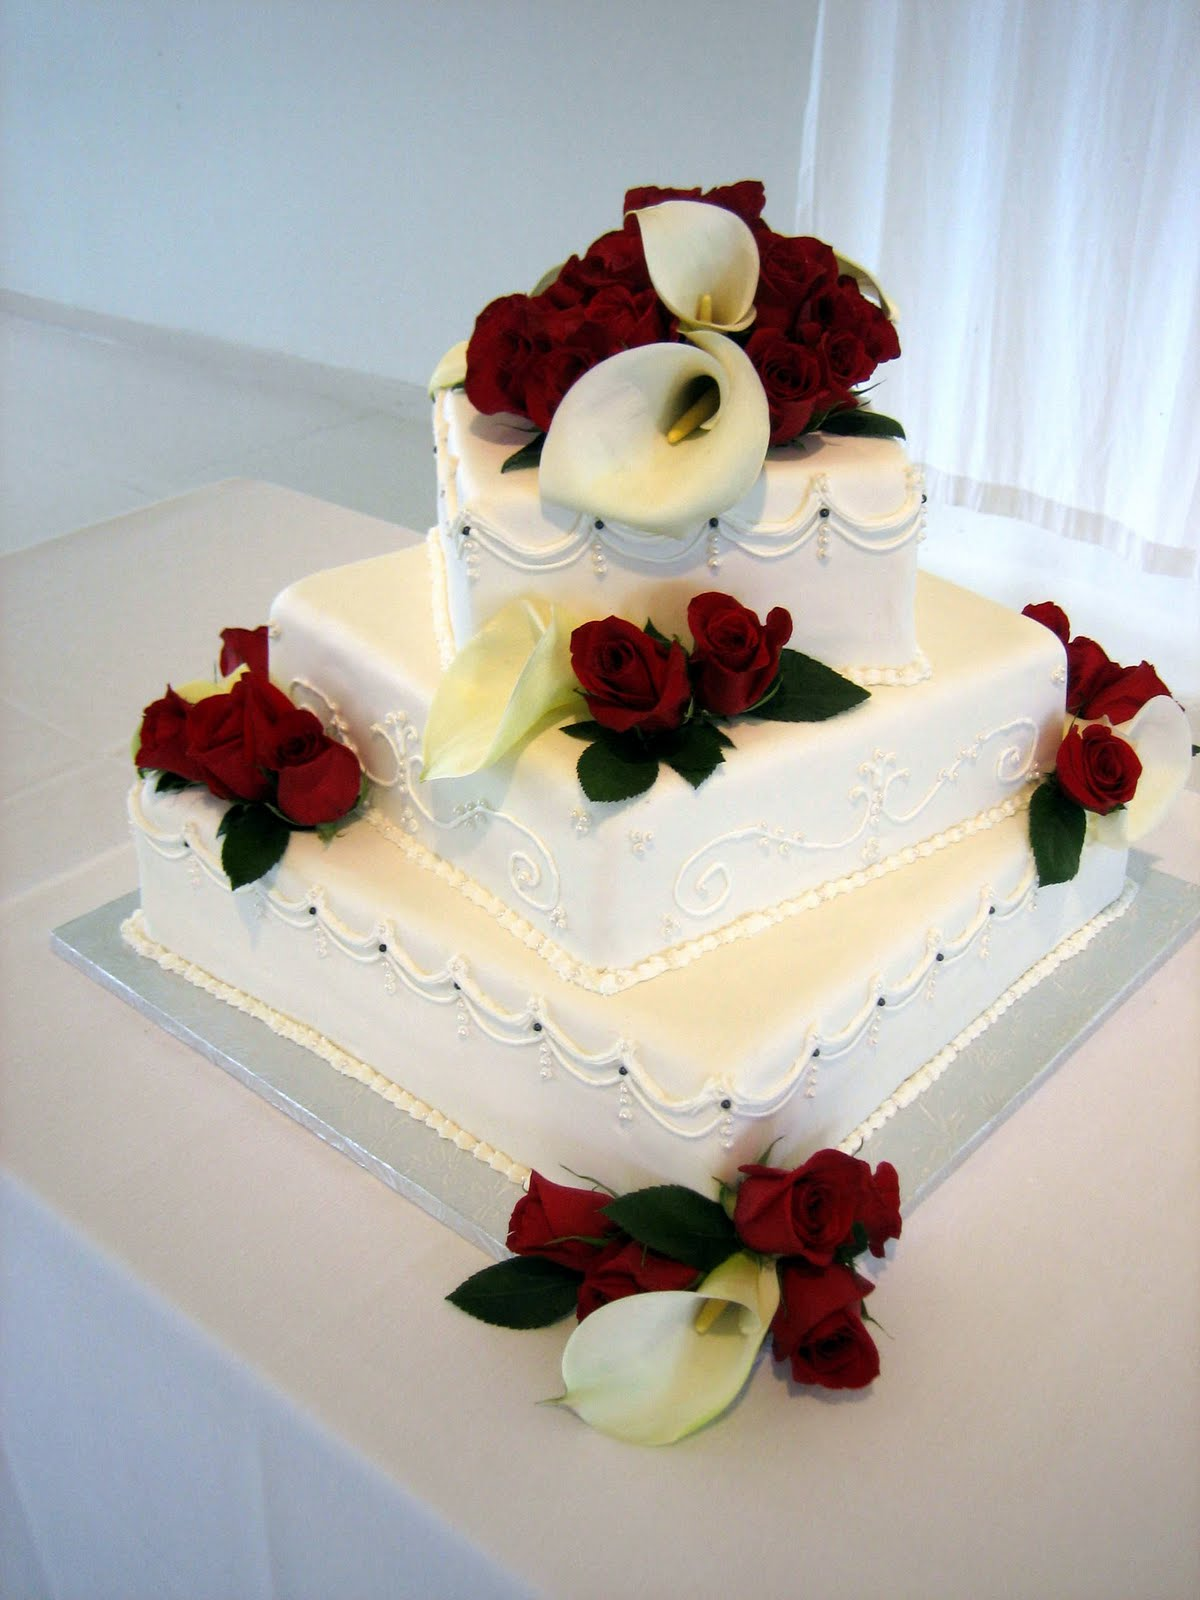 Wedding Cakes With Roses And Calla Lilies - Calla Lilly Wedding Cake